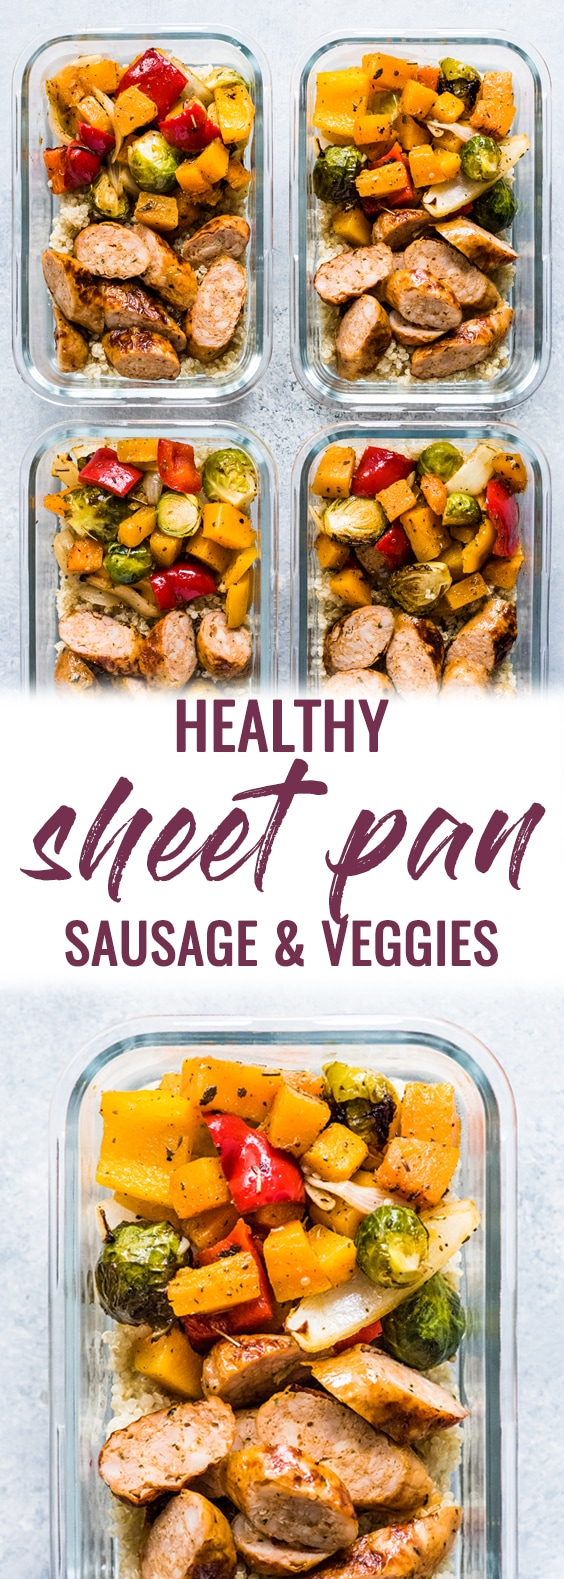 This Healthy Sheet Pan Sausage and Veggies recipe is easy, delicious and perfect for meal prep. It's gluten free, dairy free and paleo and Whole30.